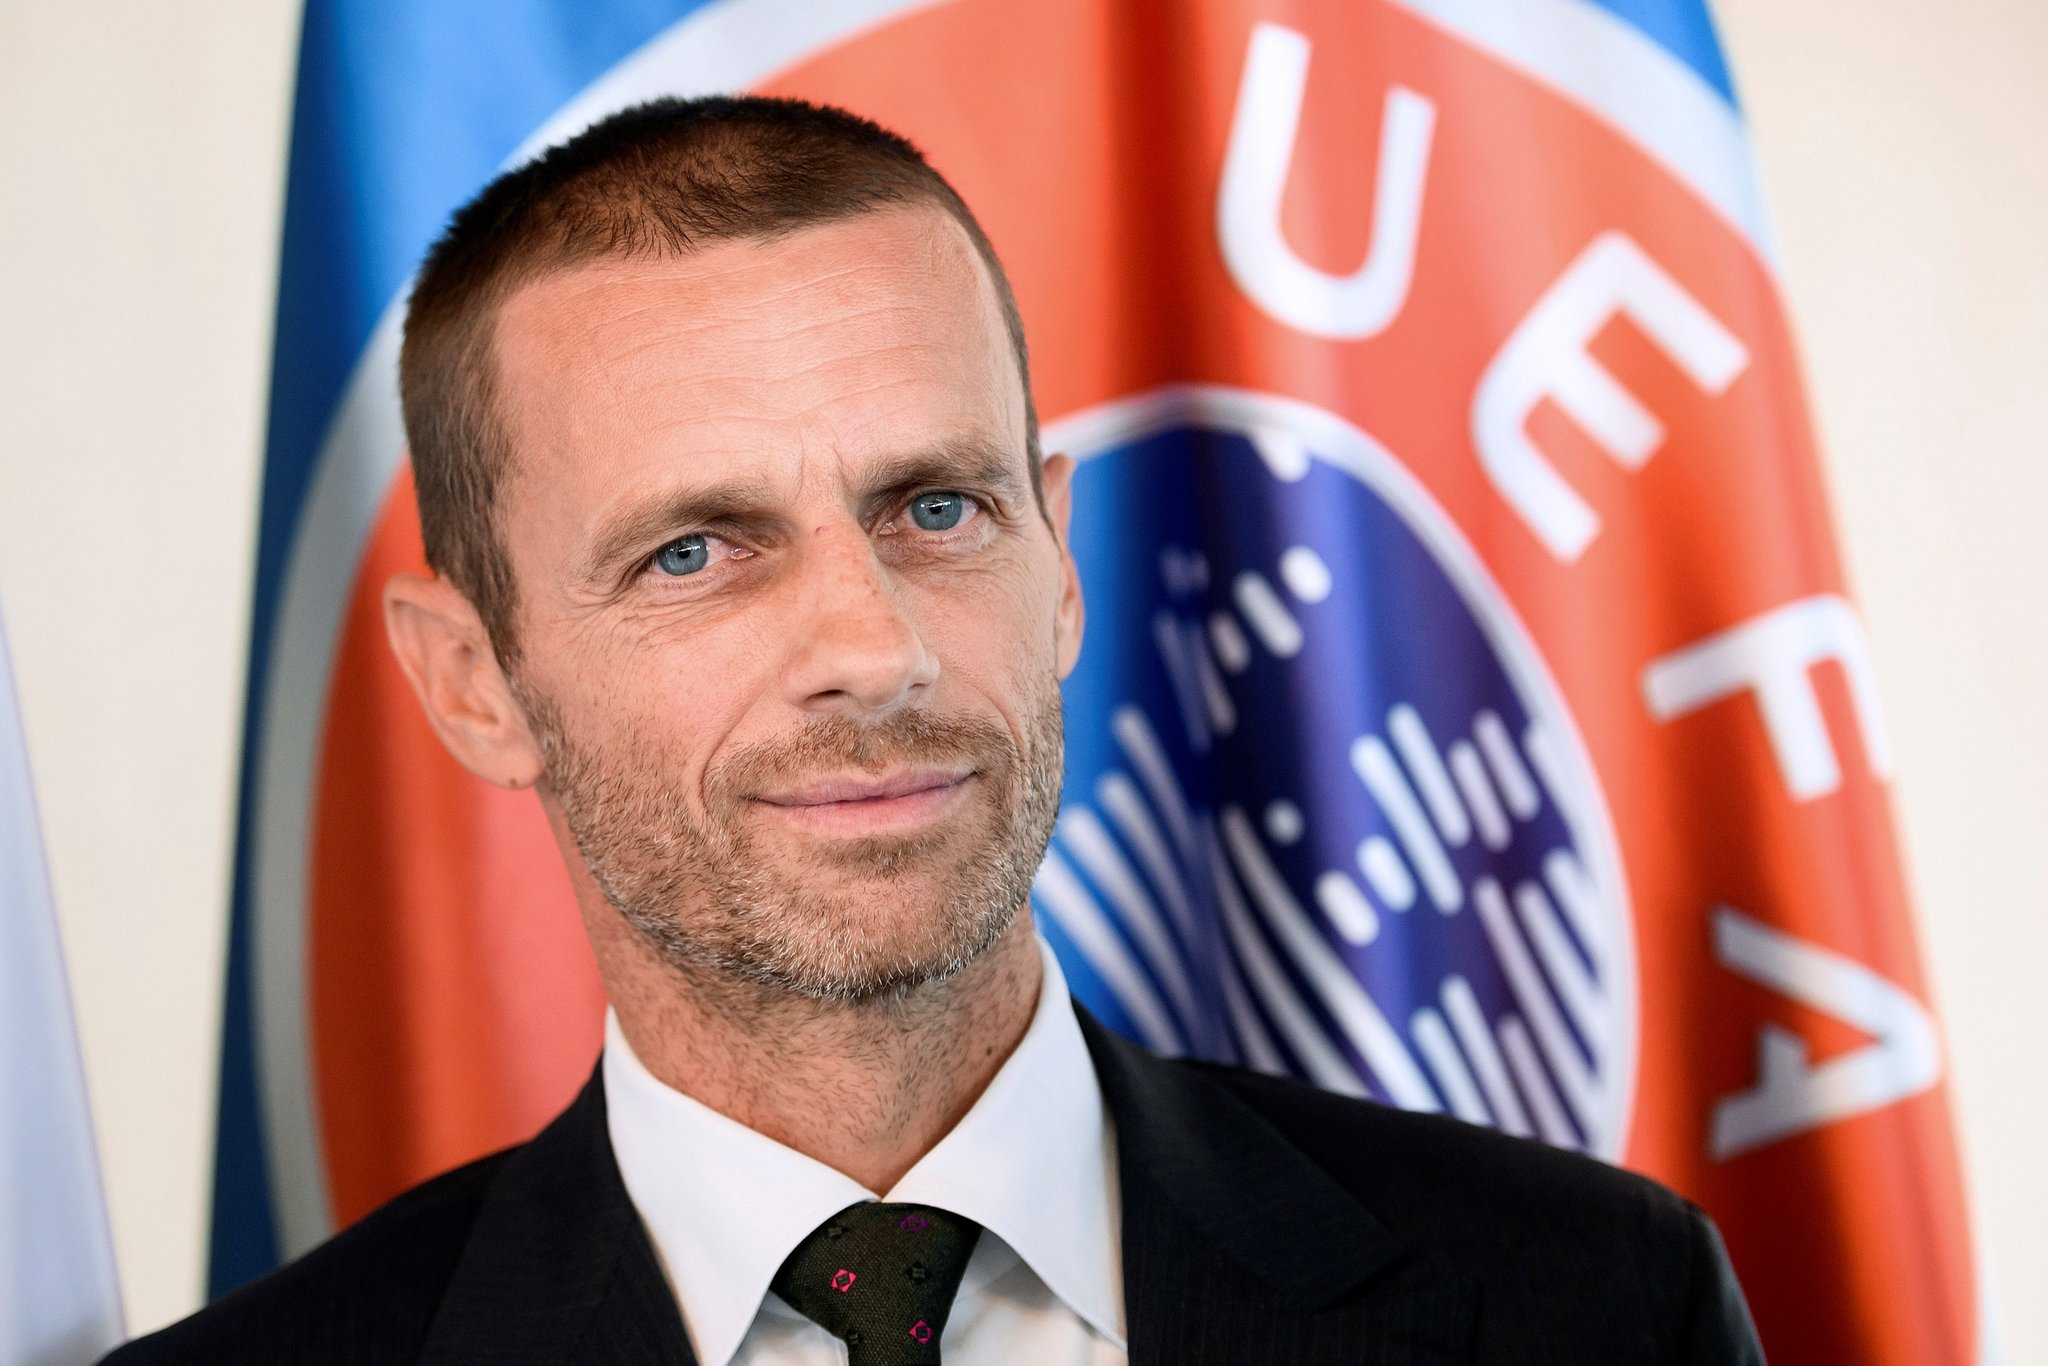 Nothing Will Stop Liverpool From Being Champions – UEFA President Ceferin